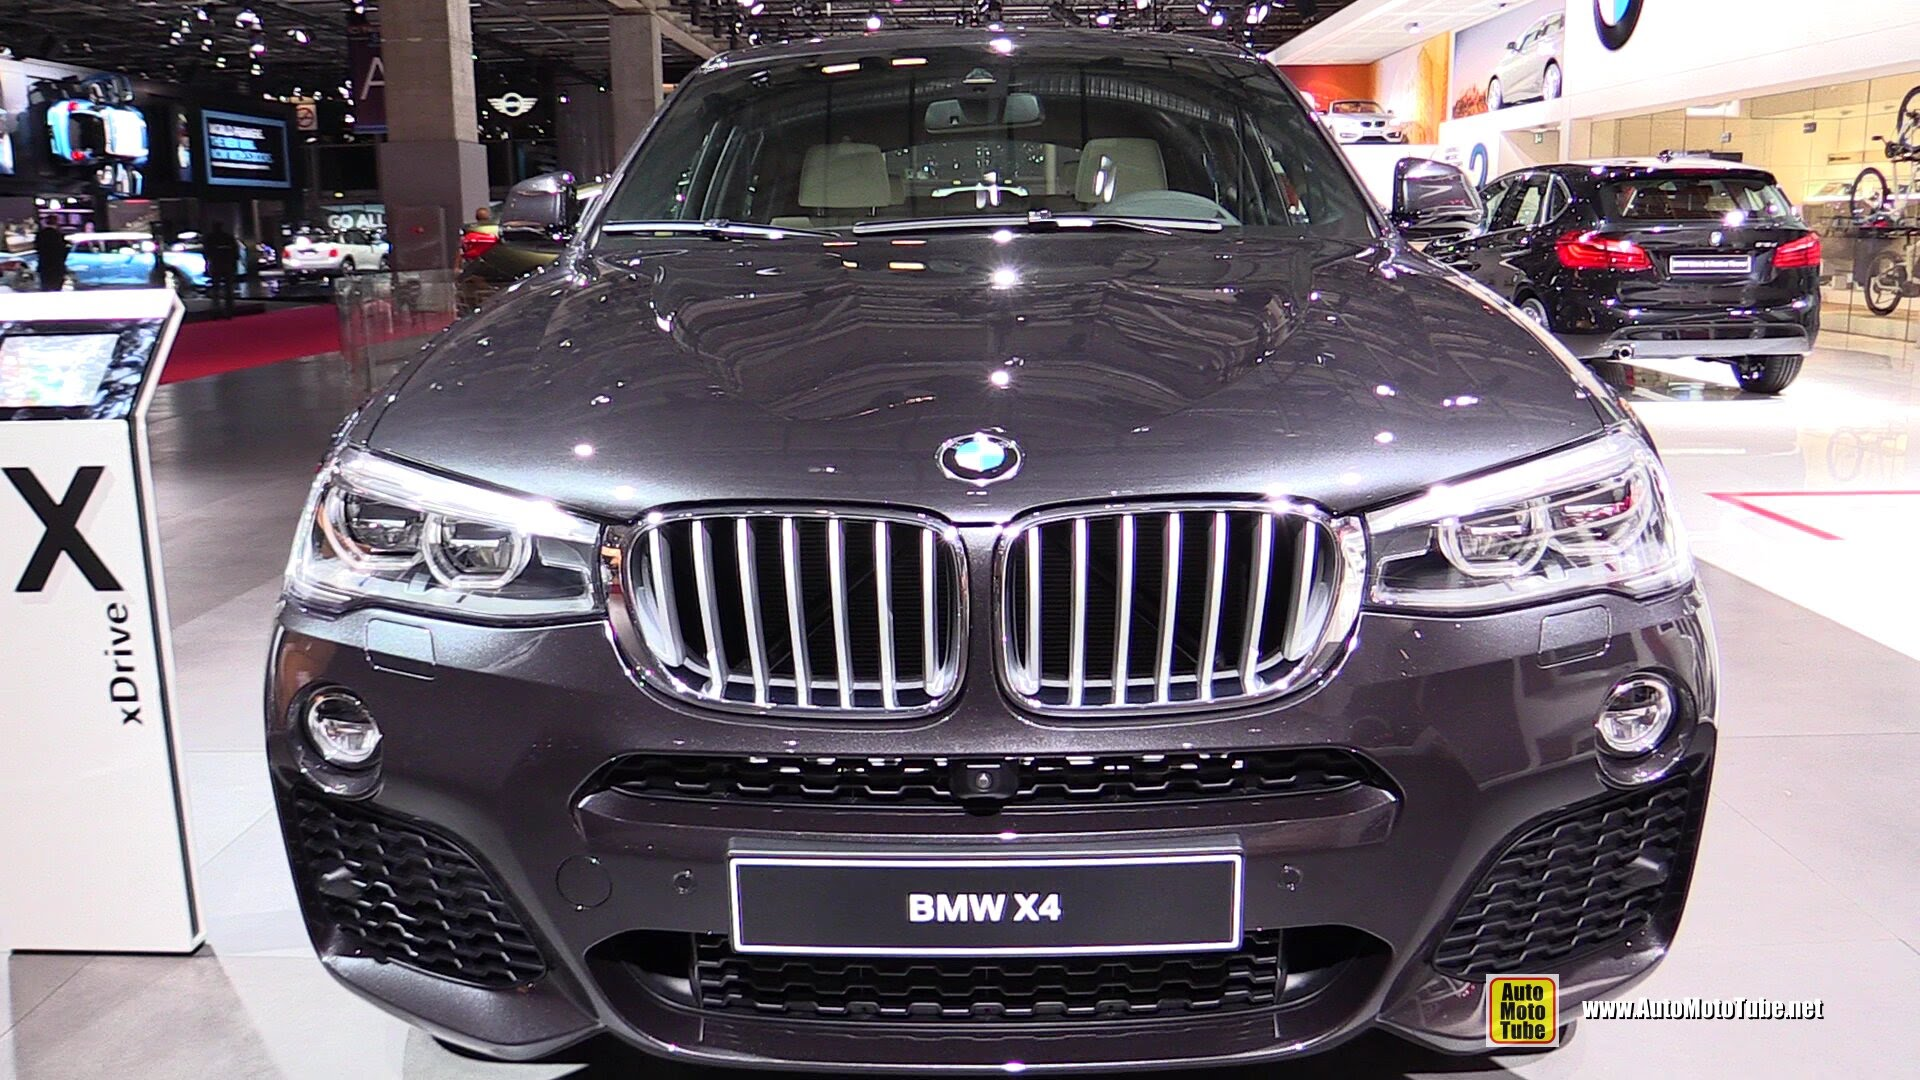 BMW X4 xDrive35d 2014 photo - 11